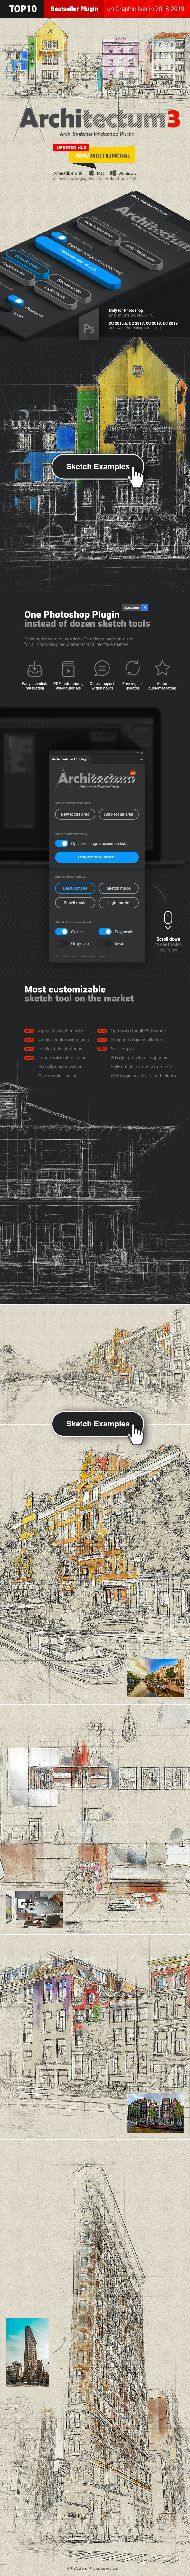 Architecture Sketch - Architectum 3 - Photoshop Plugin - Photo Effects Actions